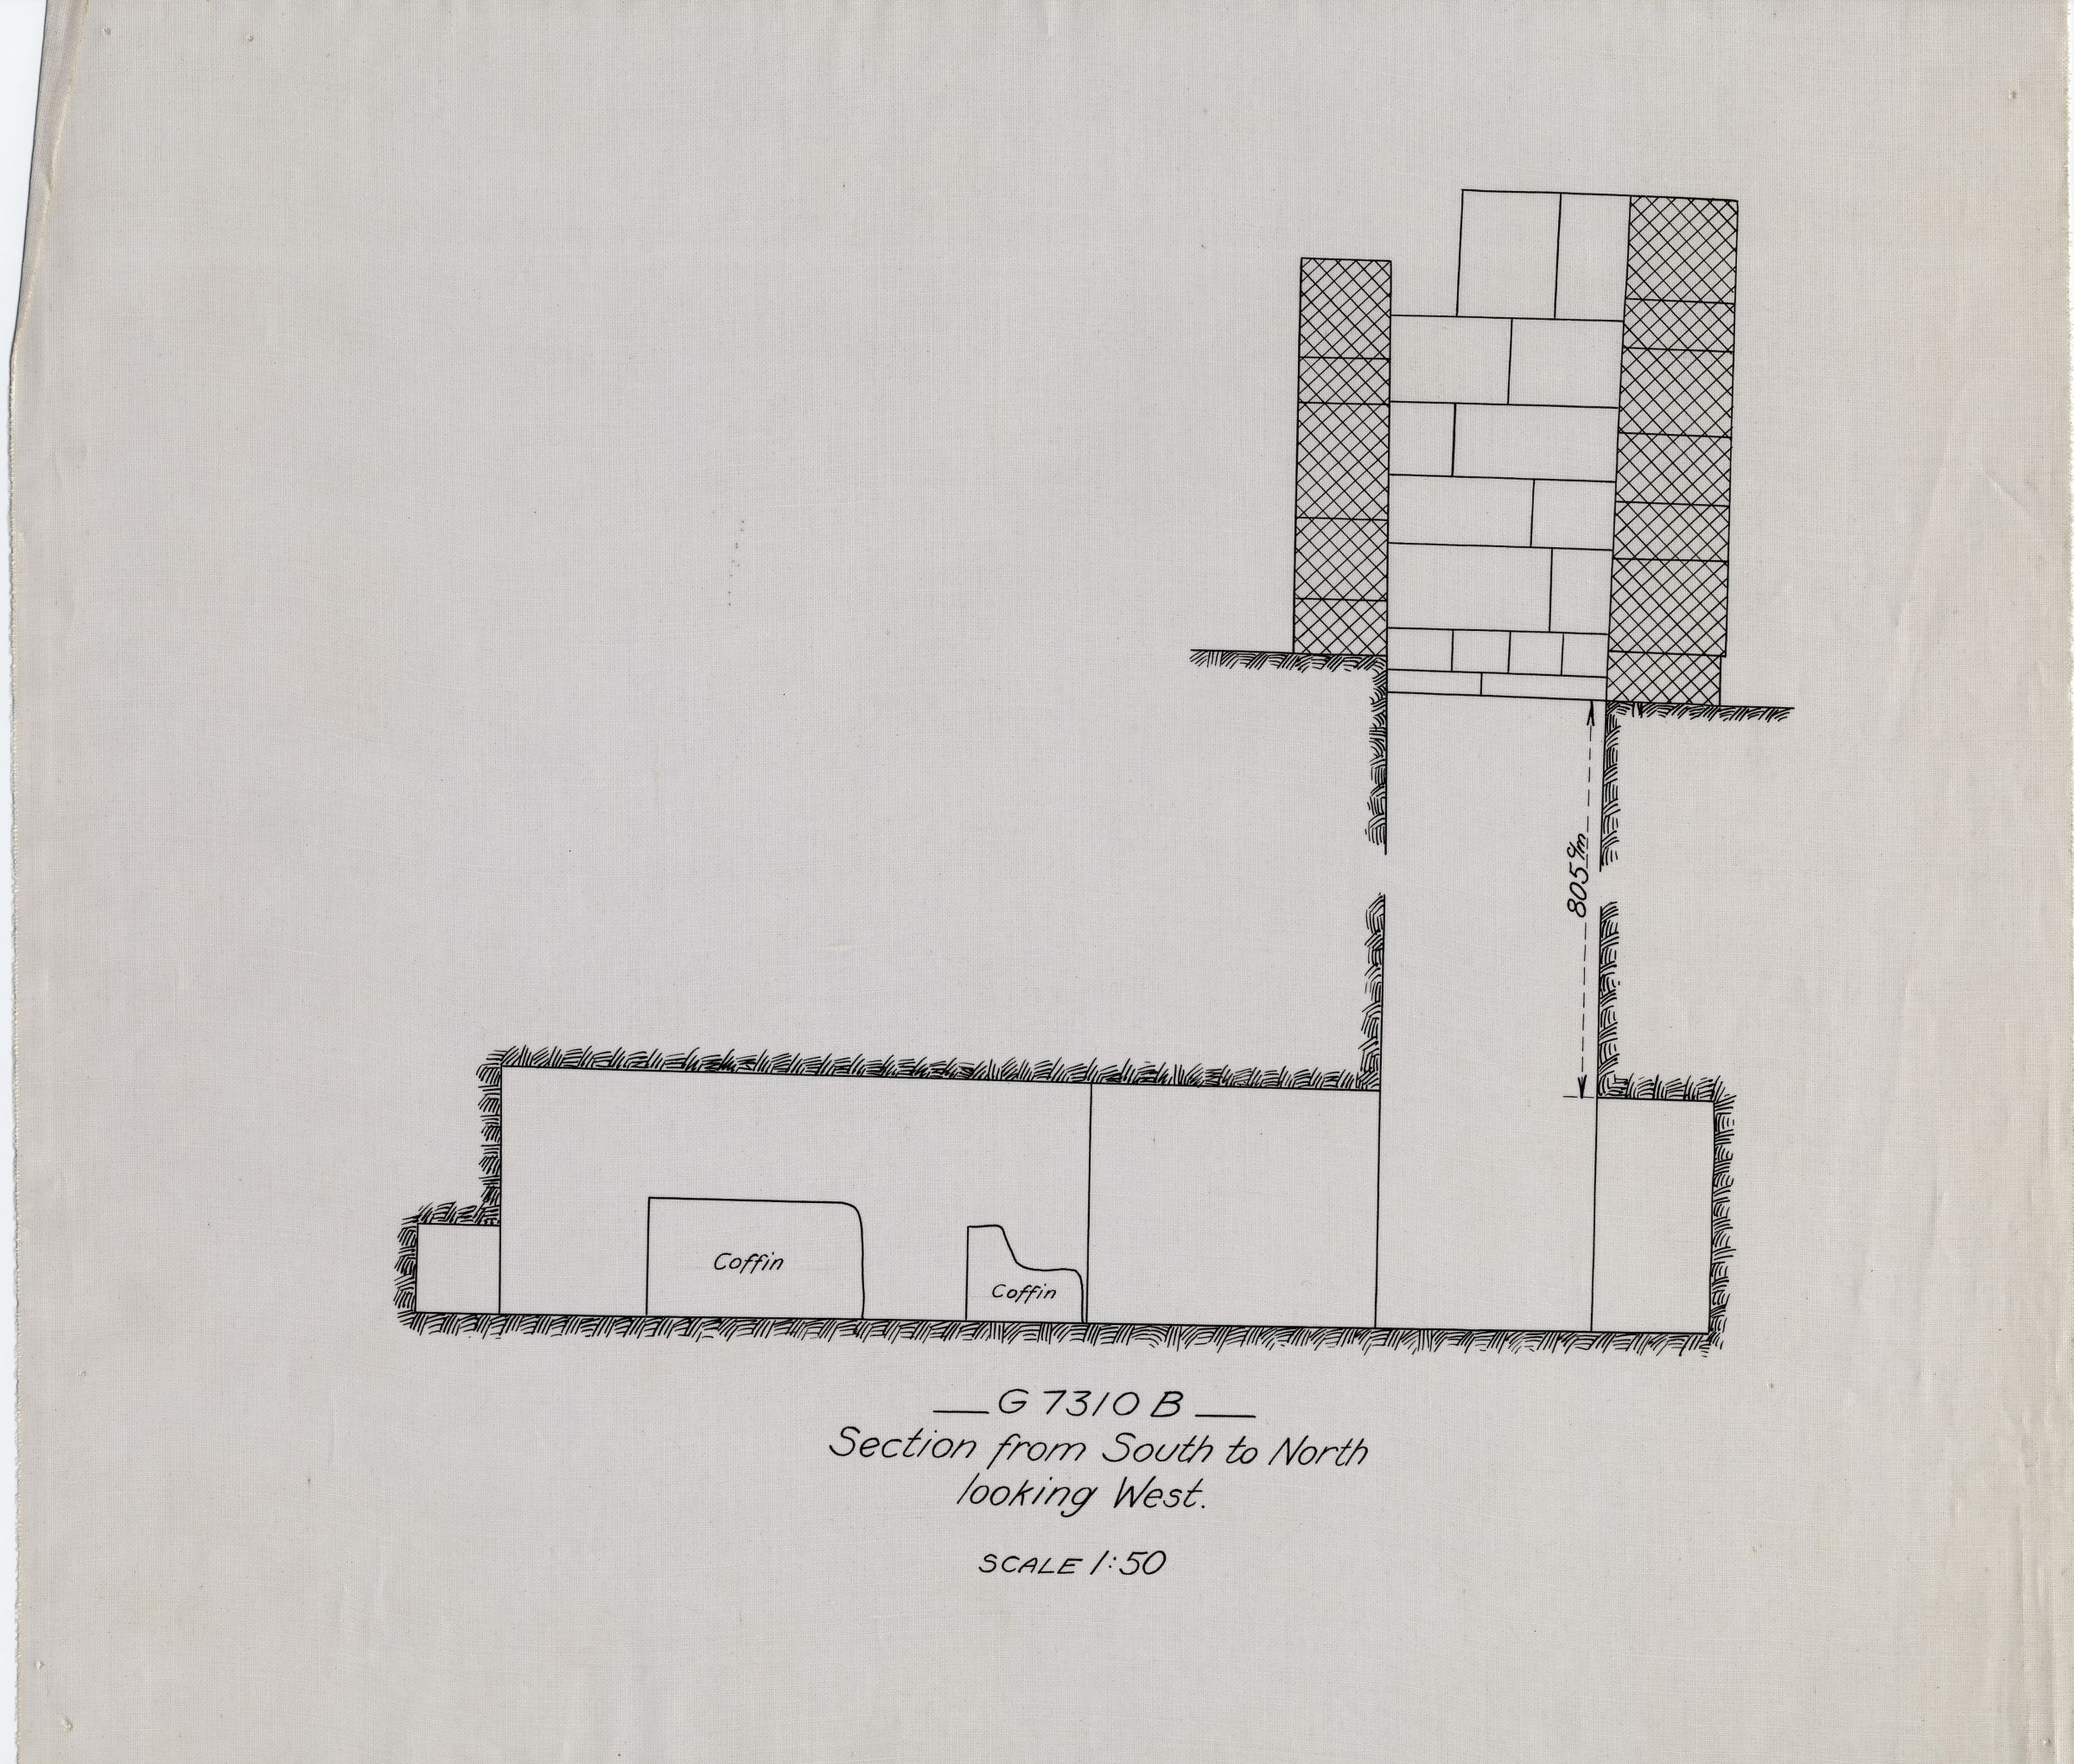 Maps and plans: G 7310, Shaft B